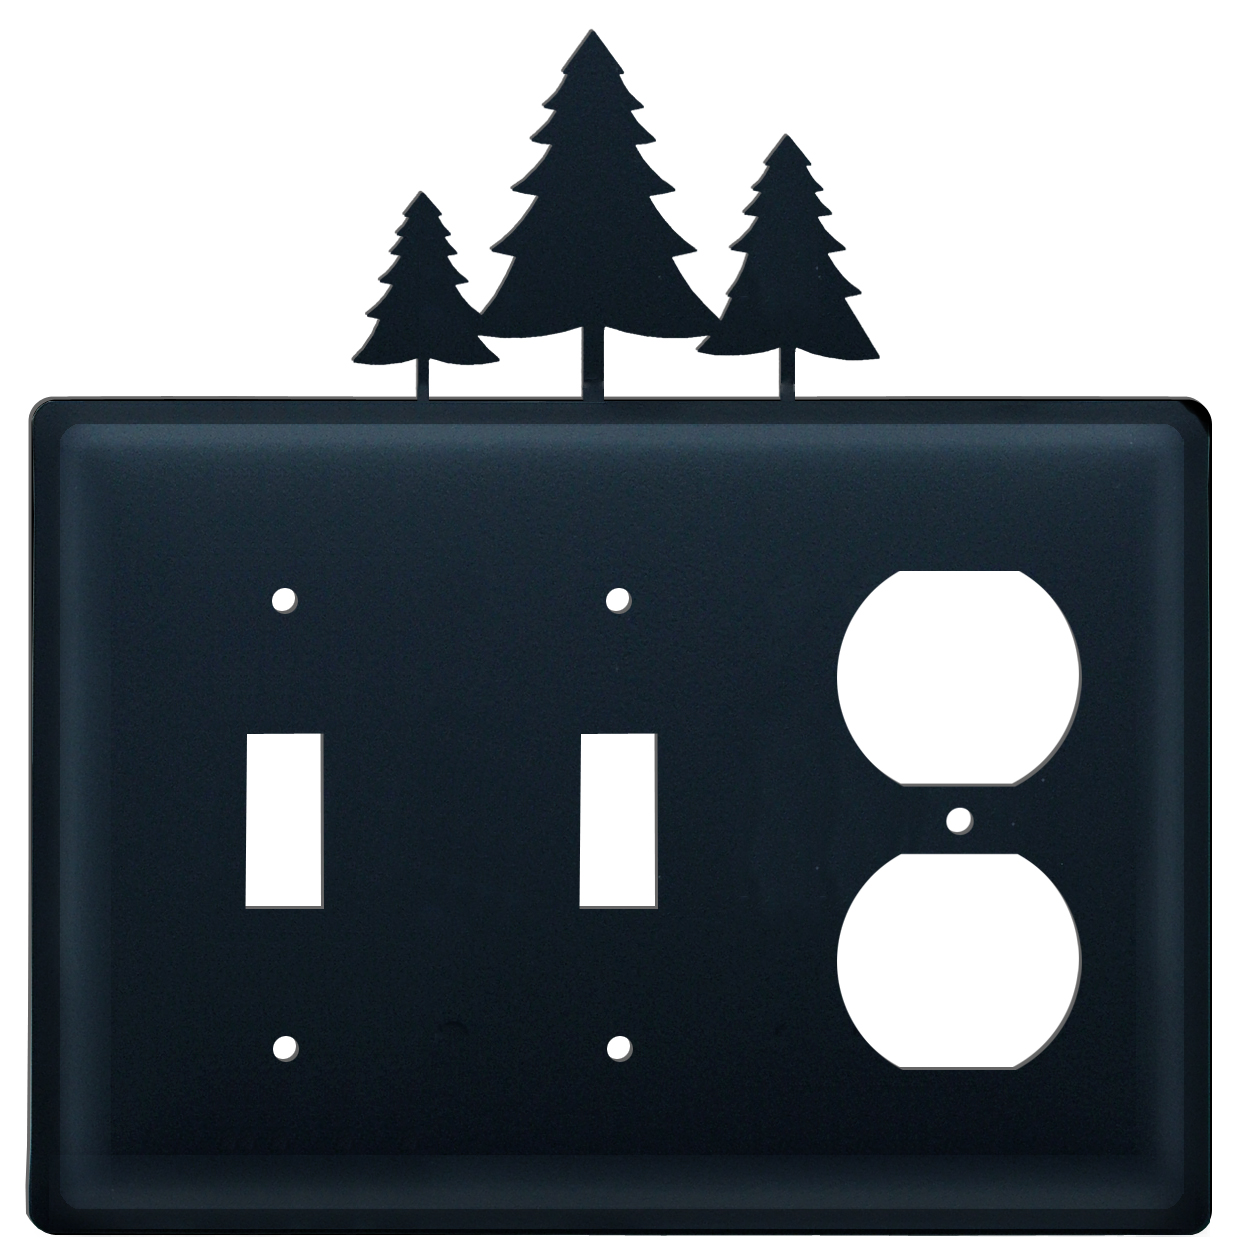 Pine Trees - Double Switch & Single Outlet Cover